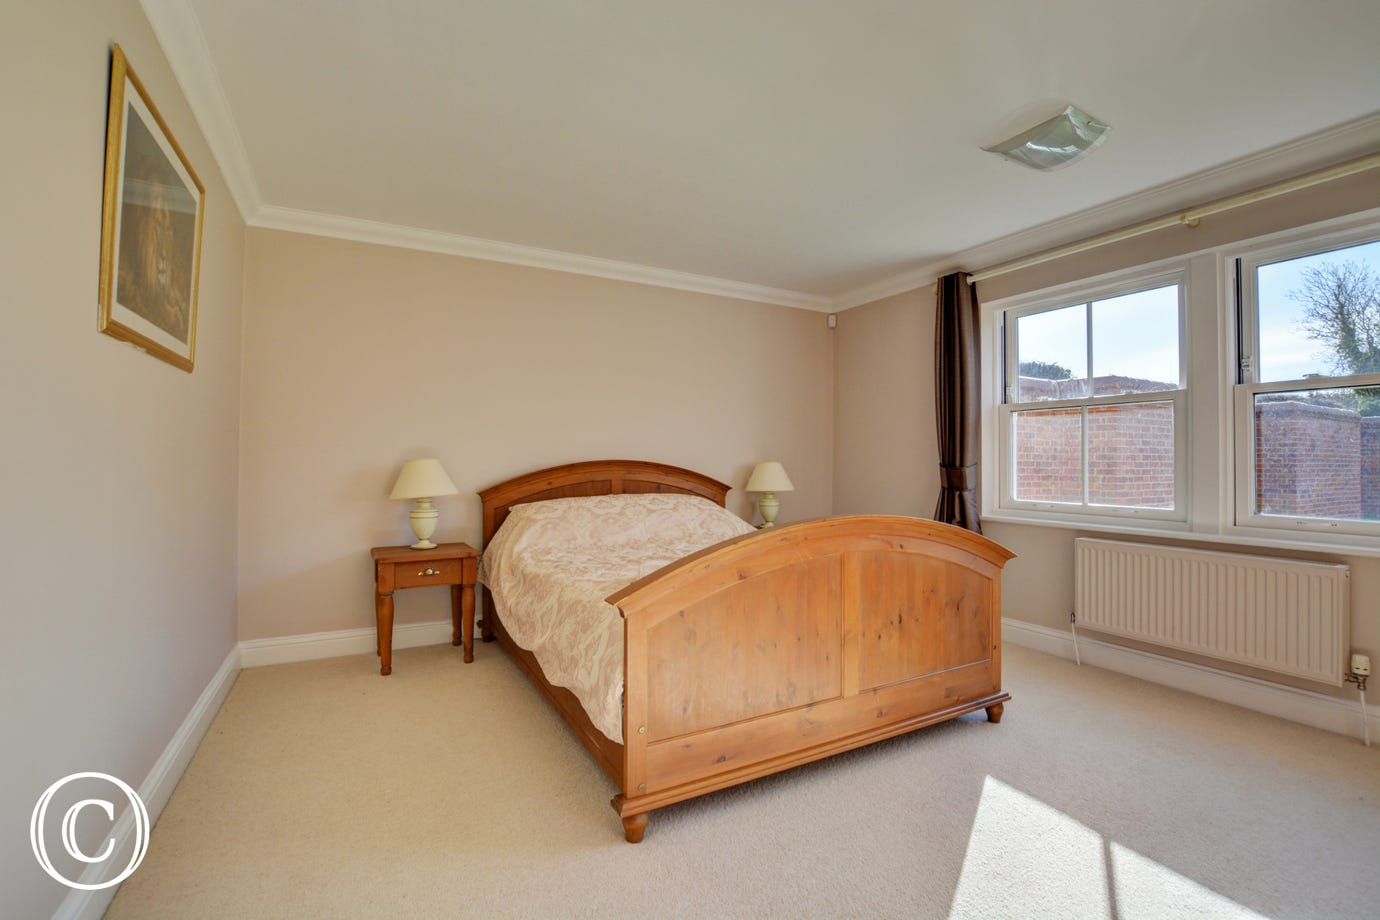 Large double bedroom with a king-size bed and en-suite shower room with shower cubicle